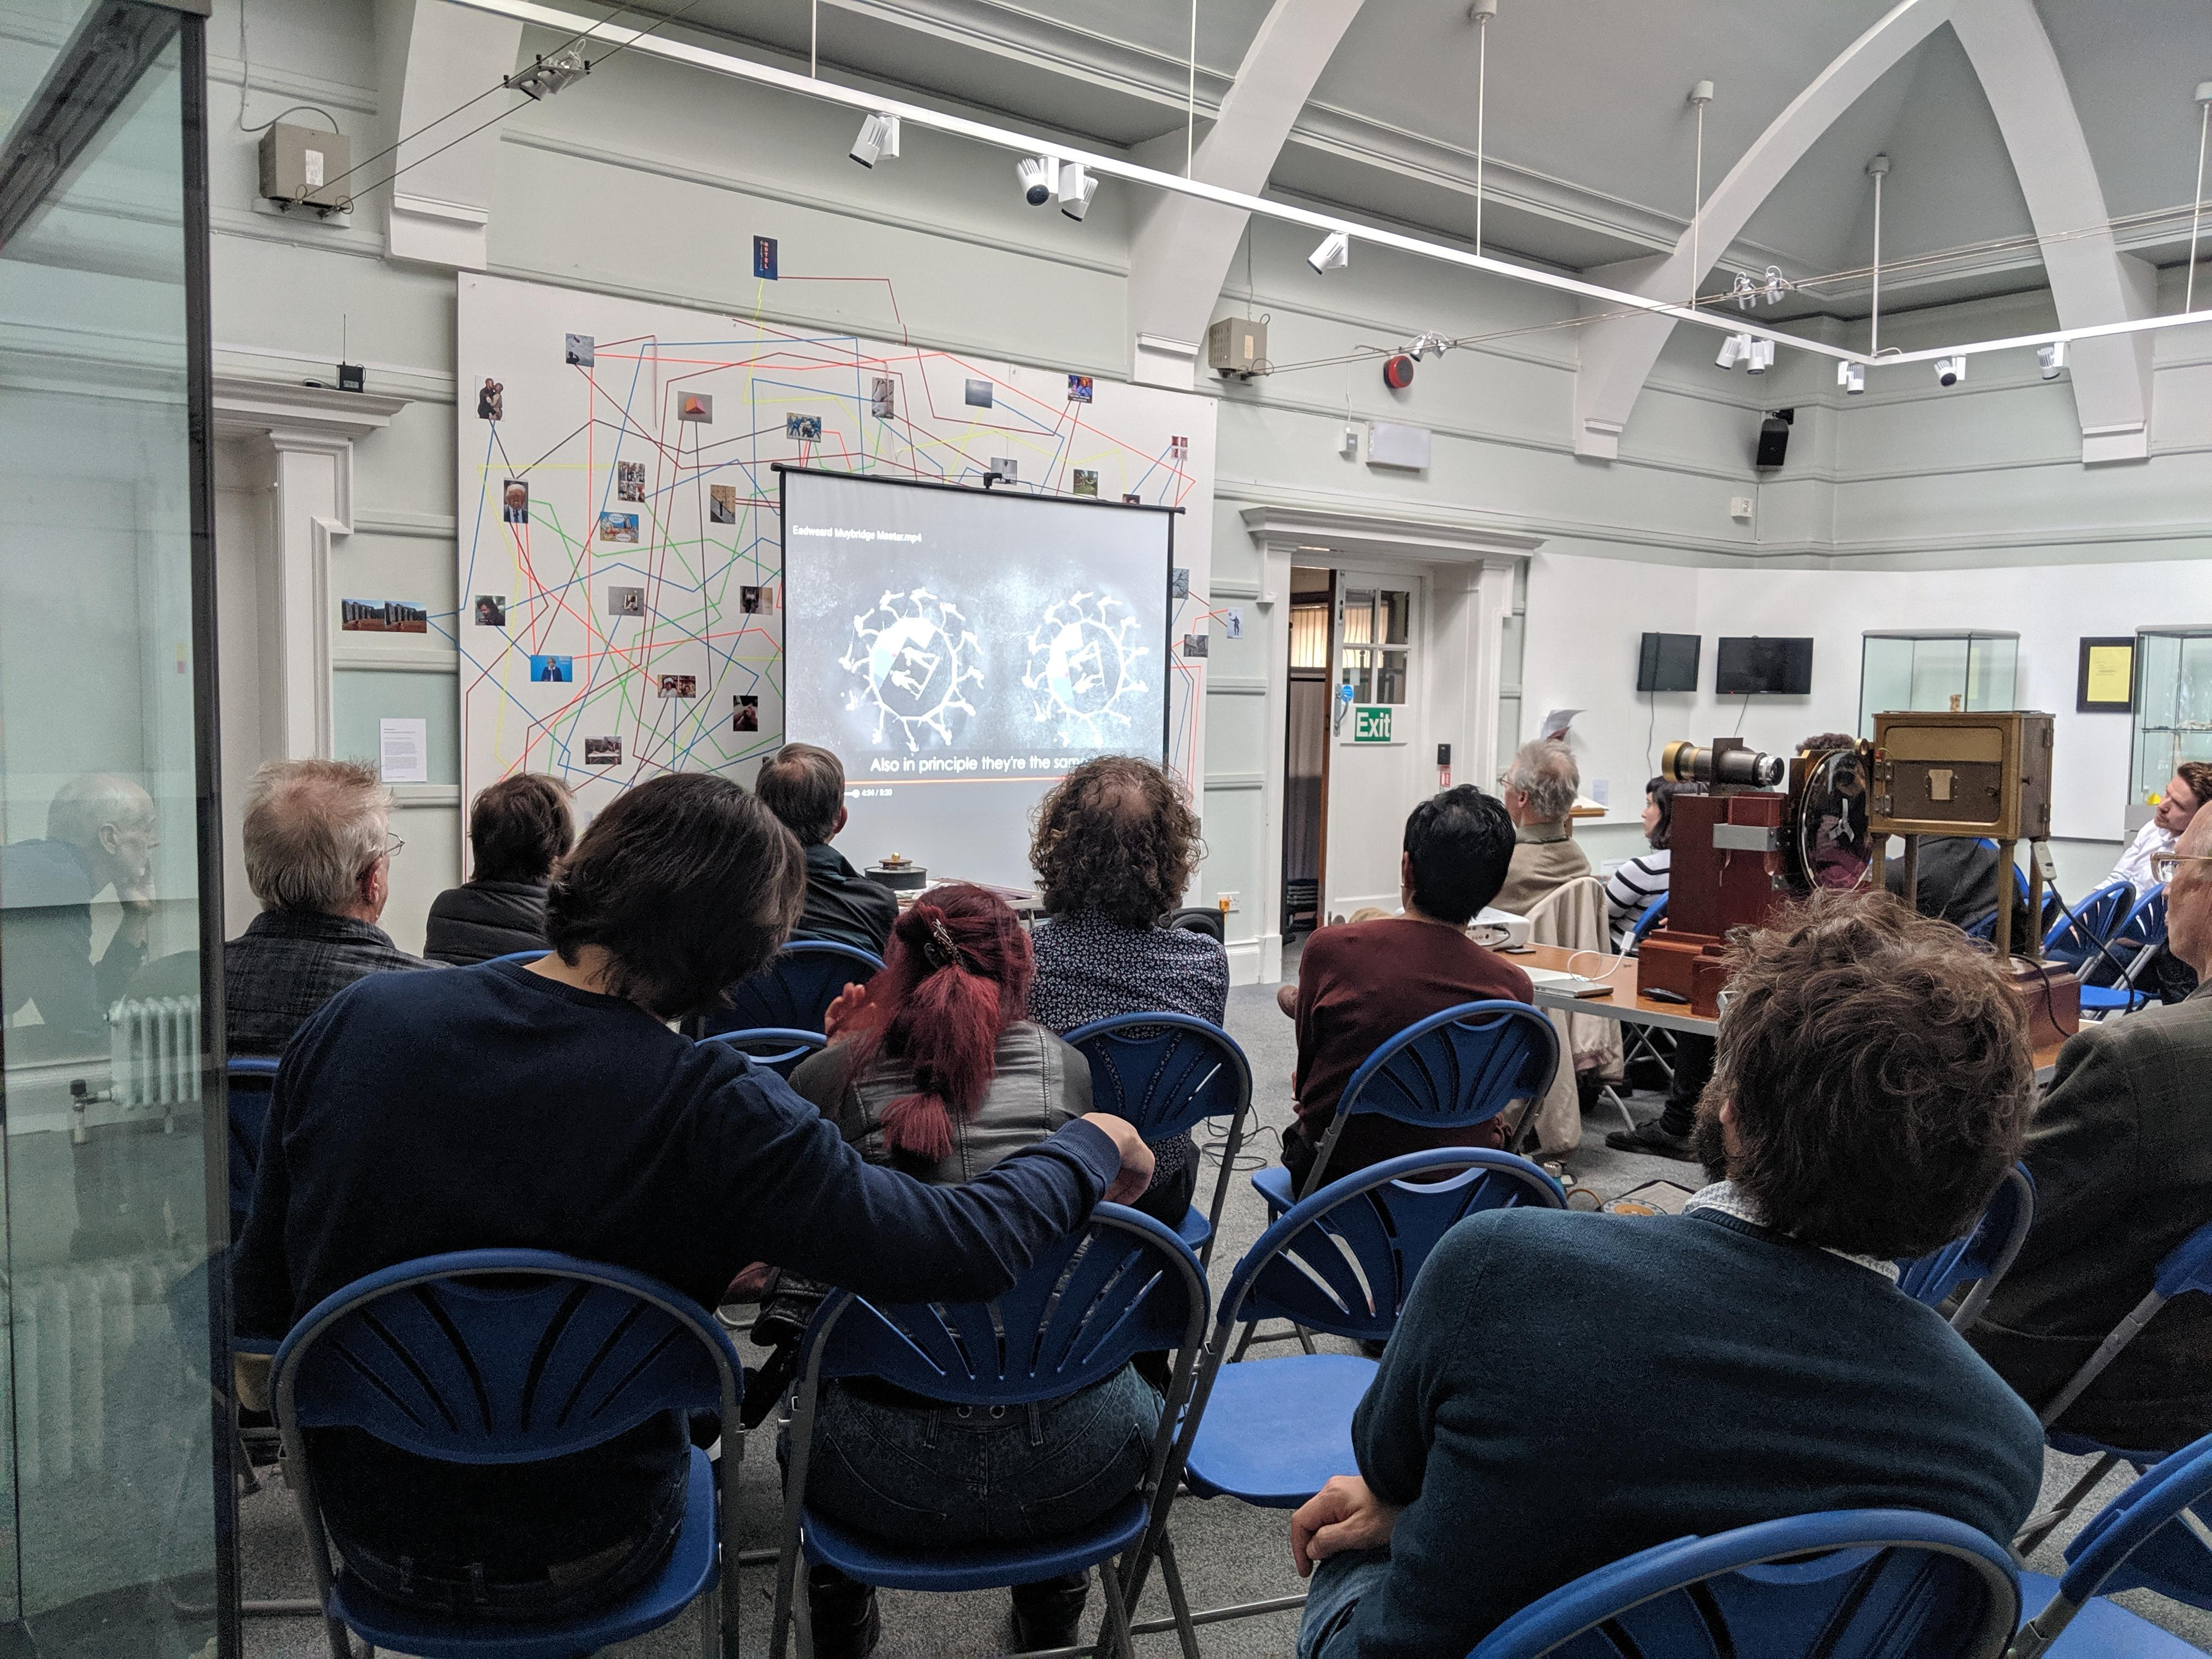 A group of people sat listening to a talk in Kingston Museum